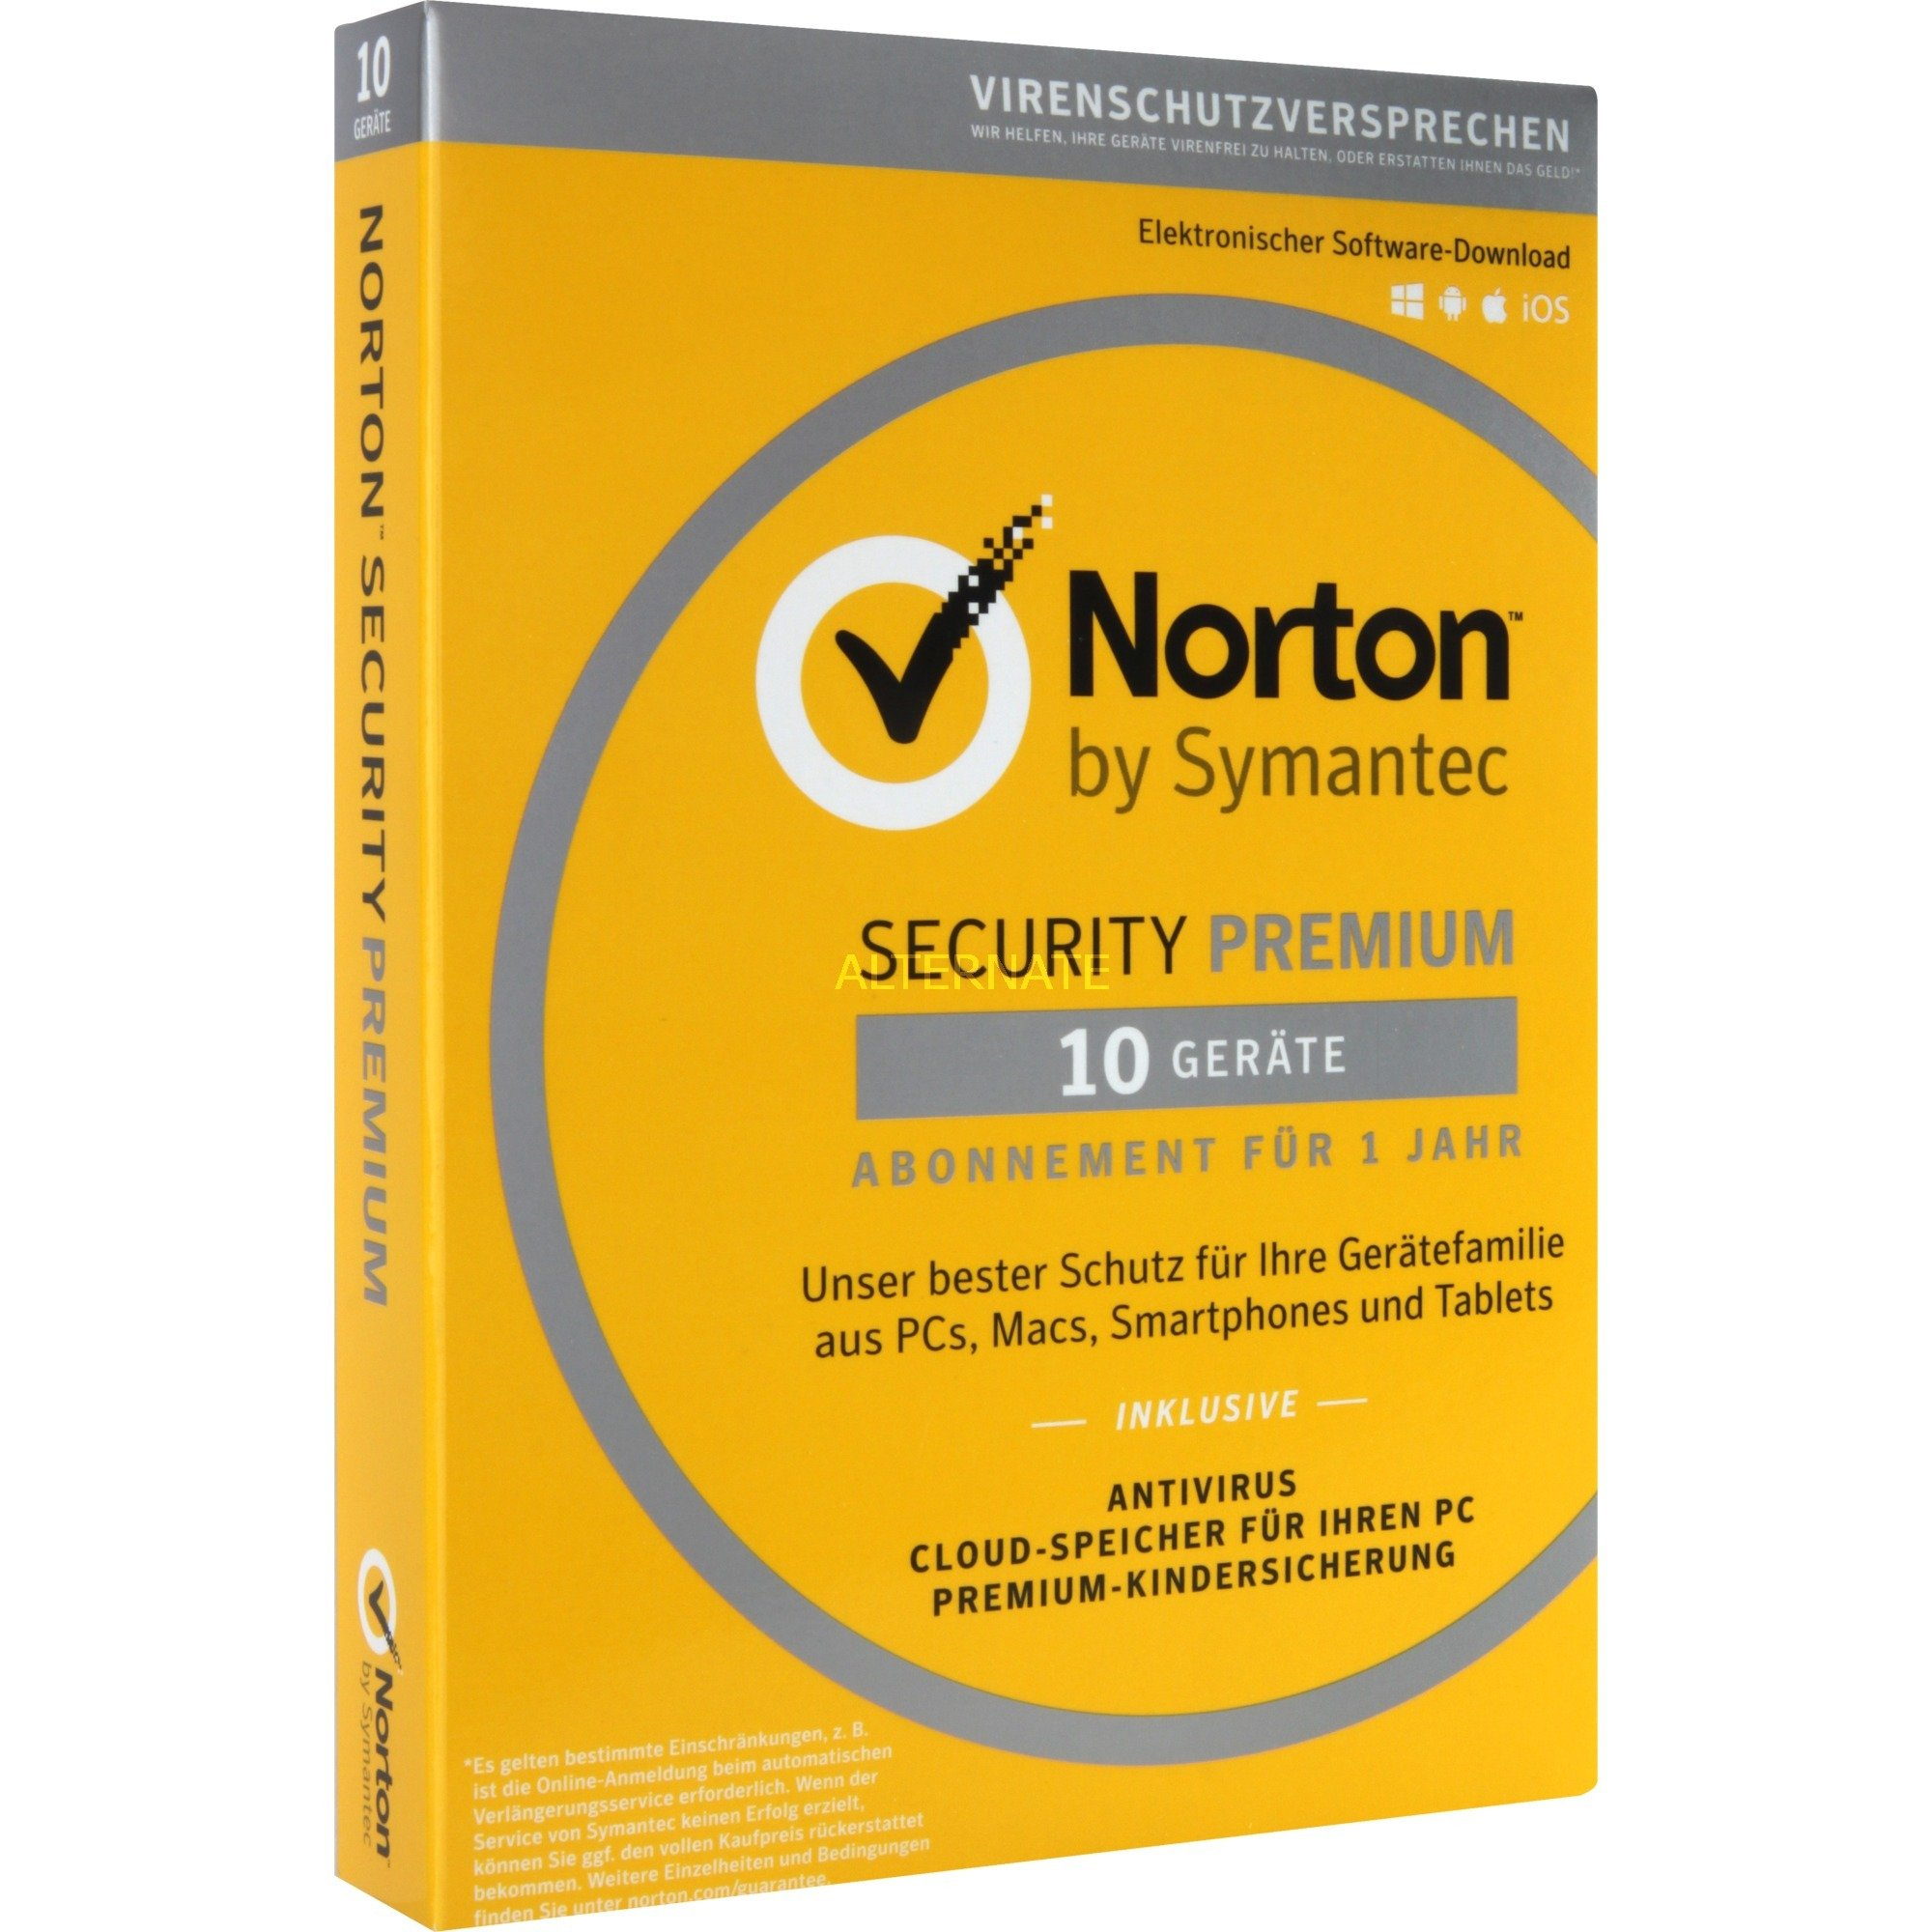 Norton Security Premium 3.0 Full license 1usuario(s) 1año(s) Alemán, Software